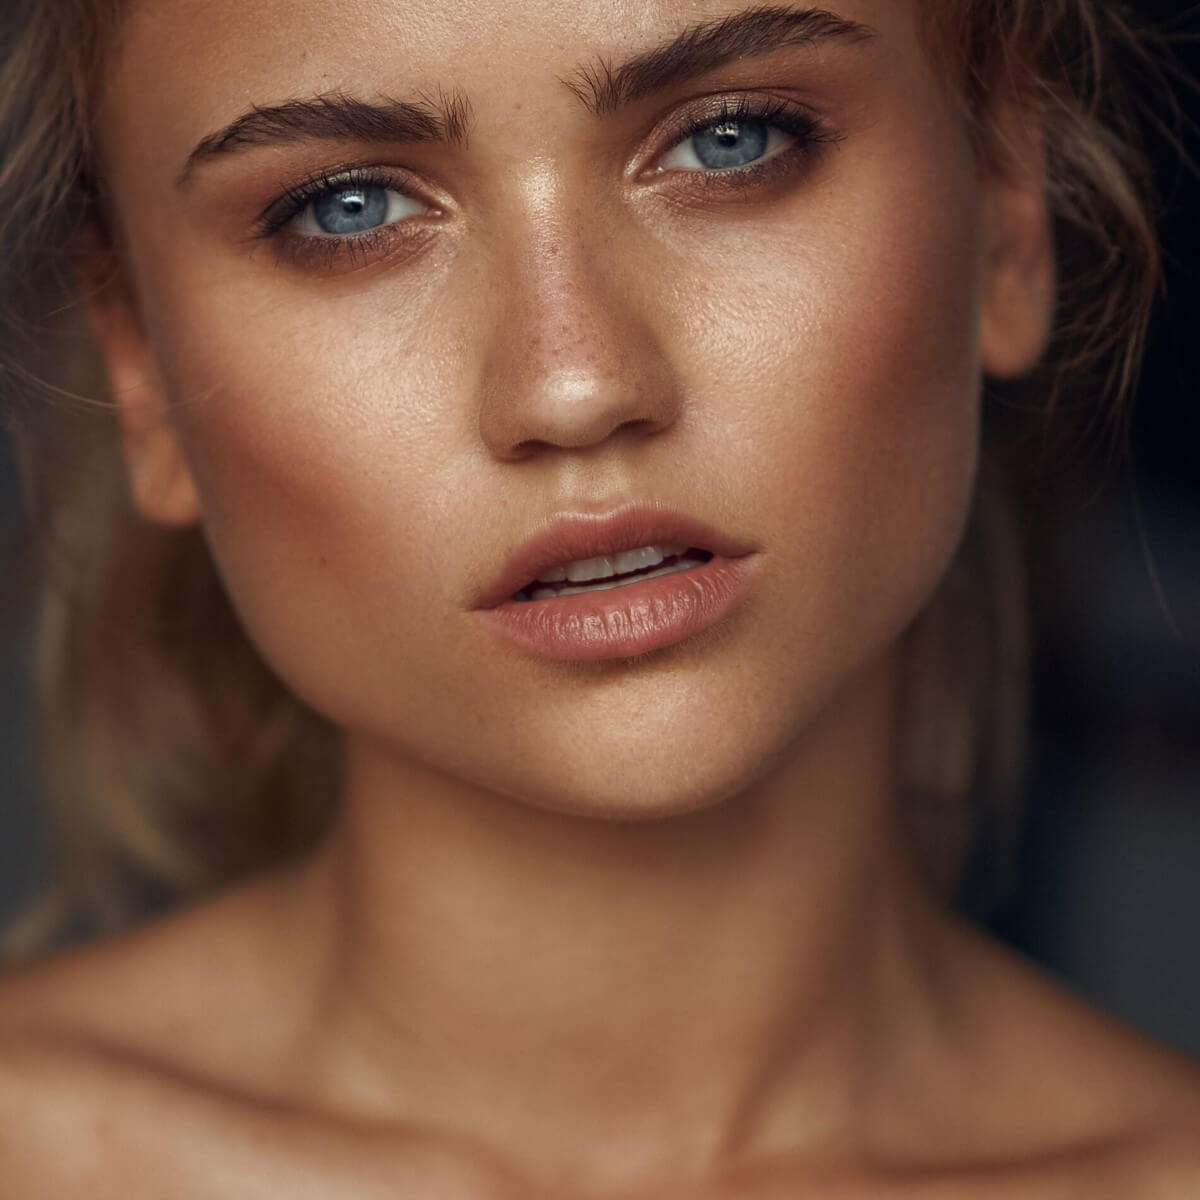 Monika Dembińska - Glow & Natural